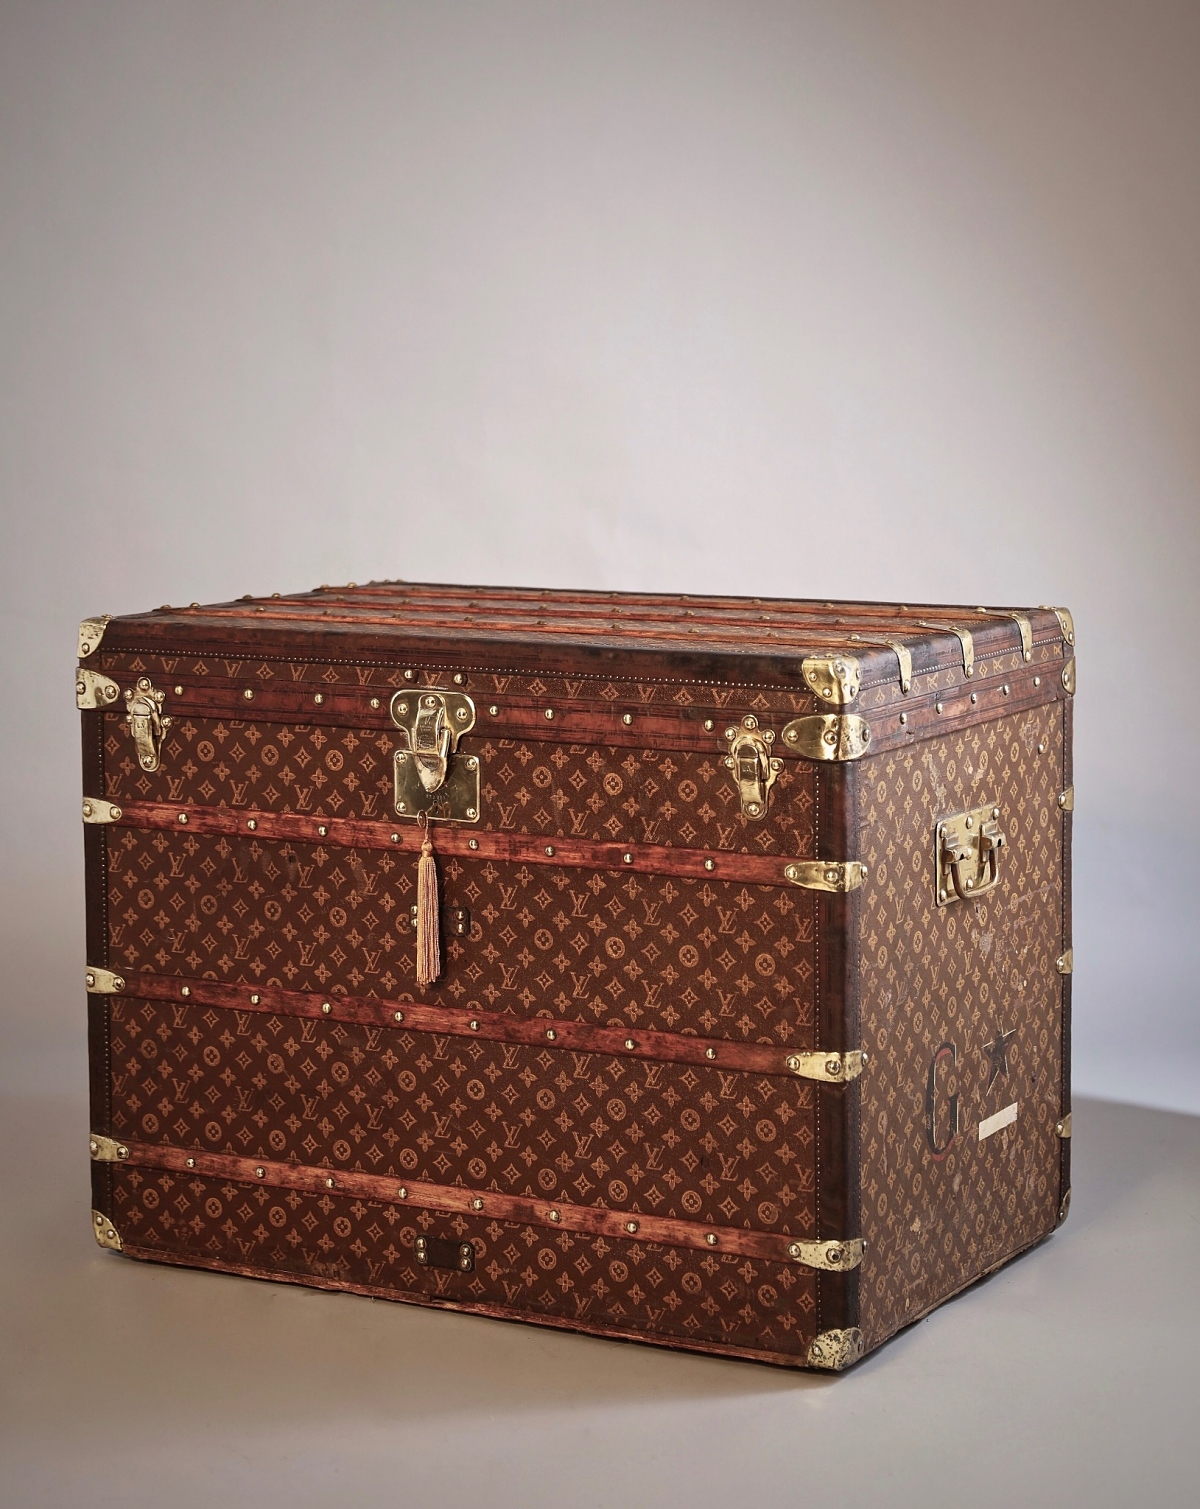 he-well-traveled-trunk-louis-vuitton-thumbnail-product-5696-1